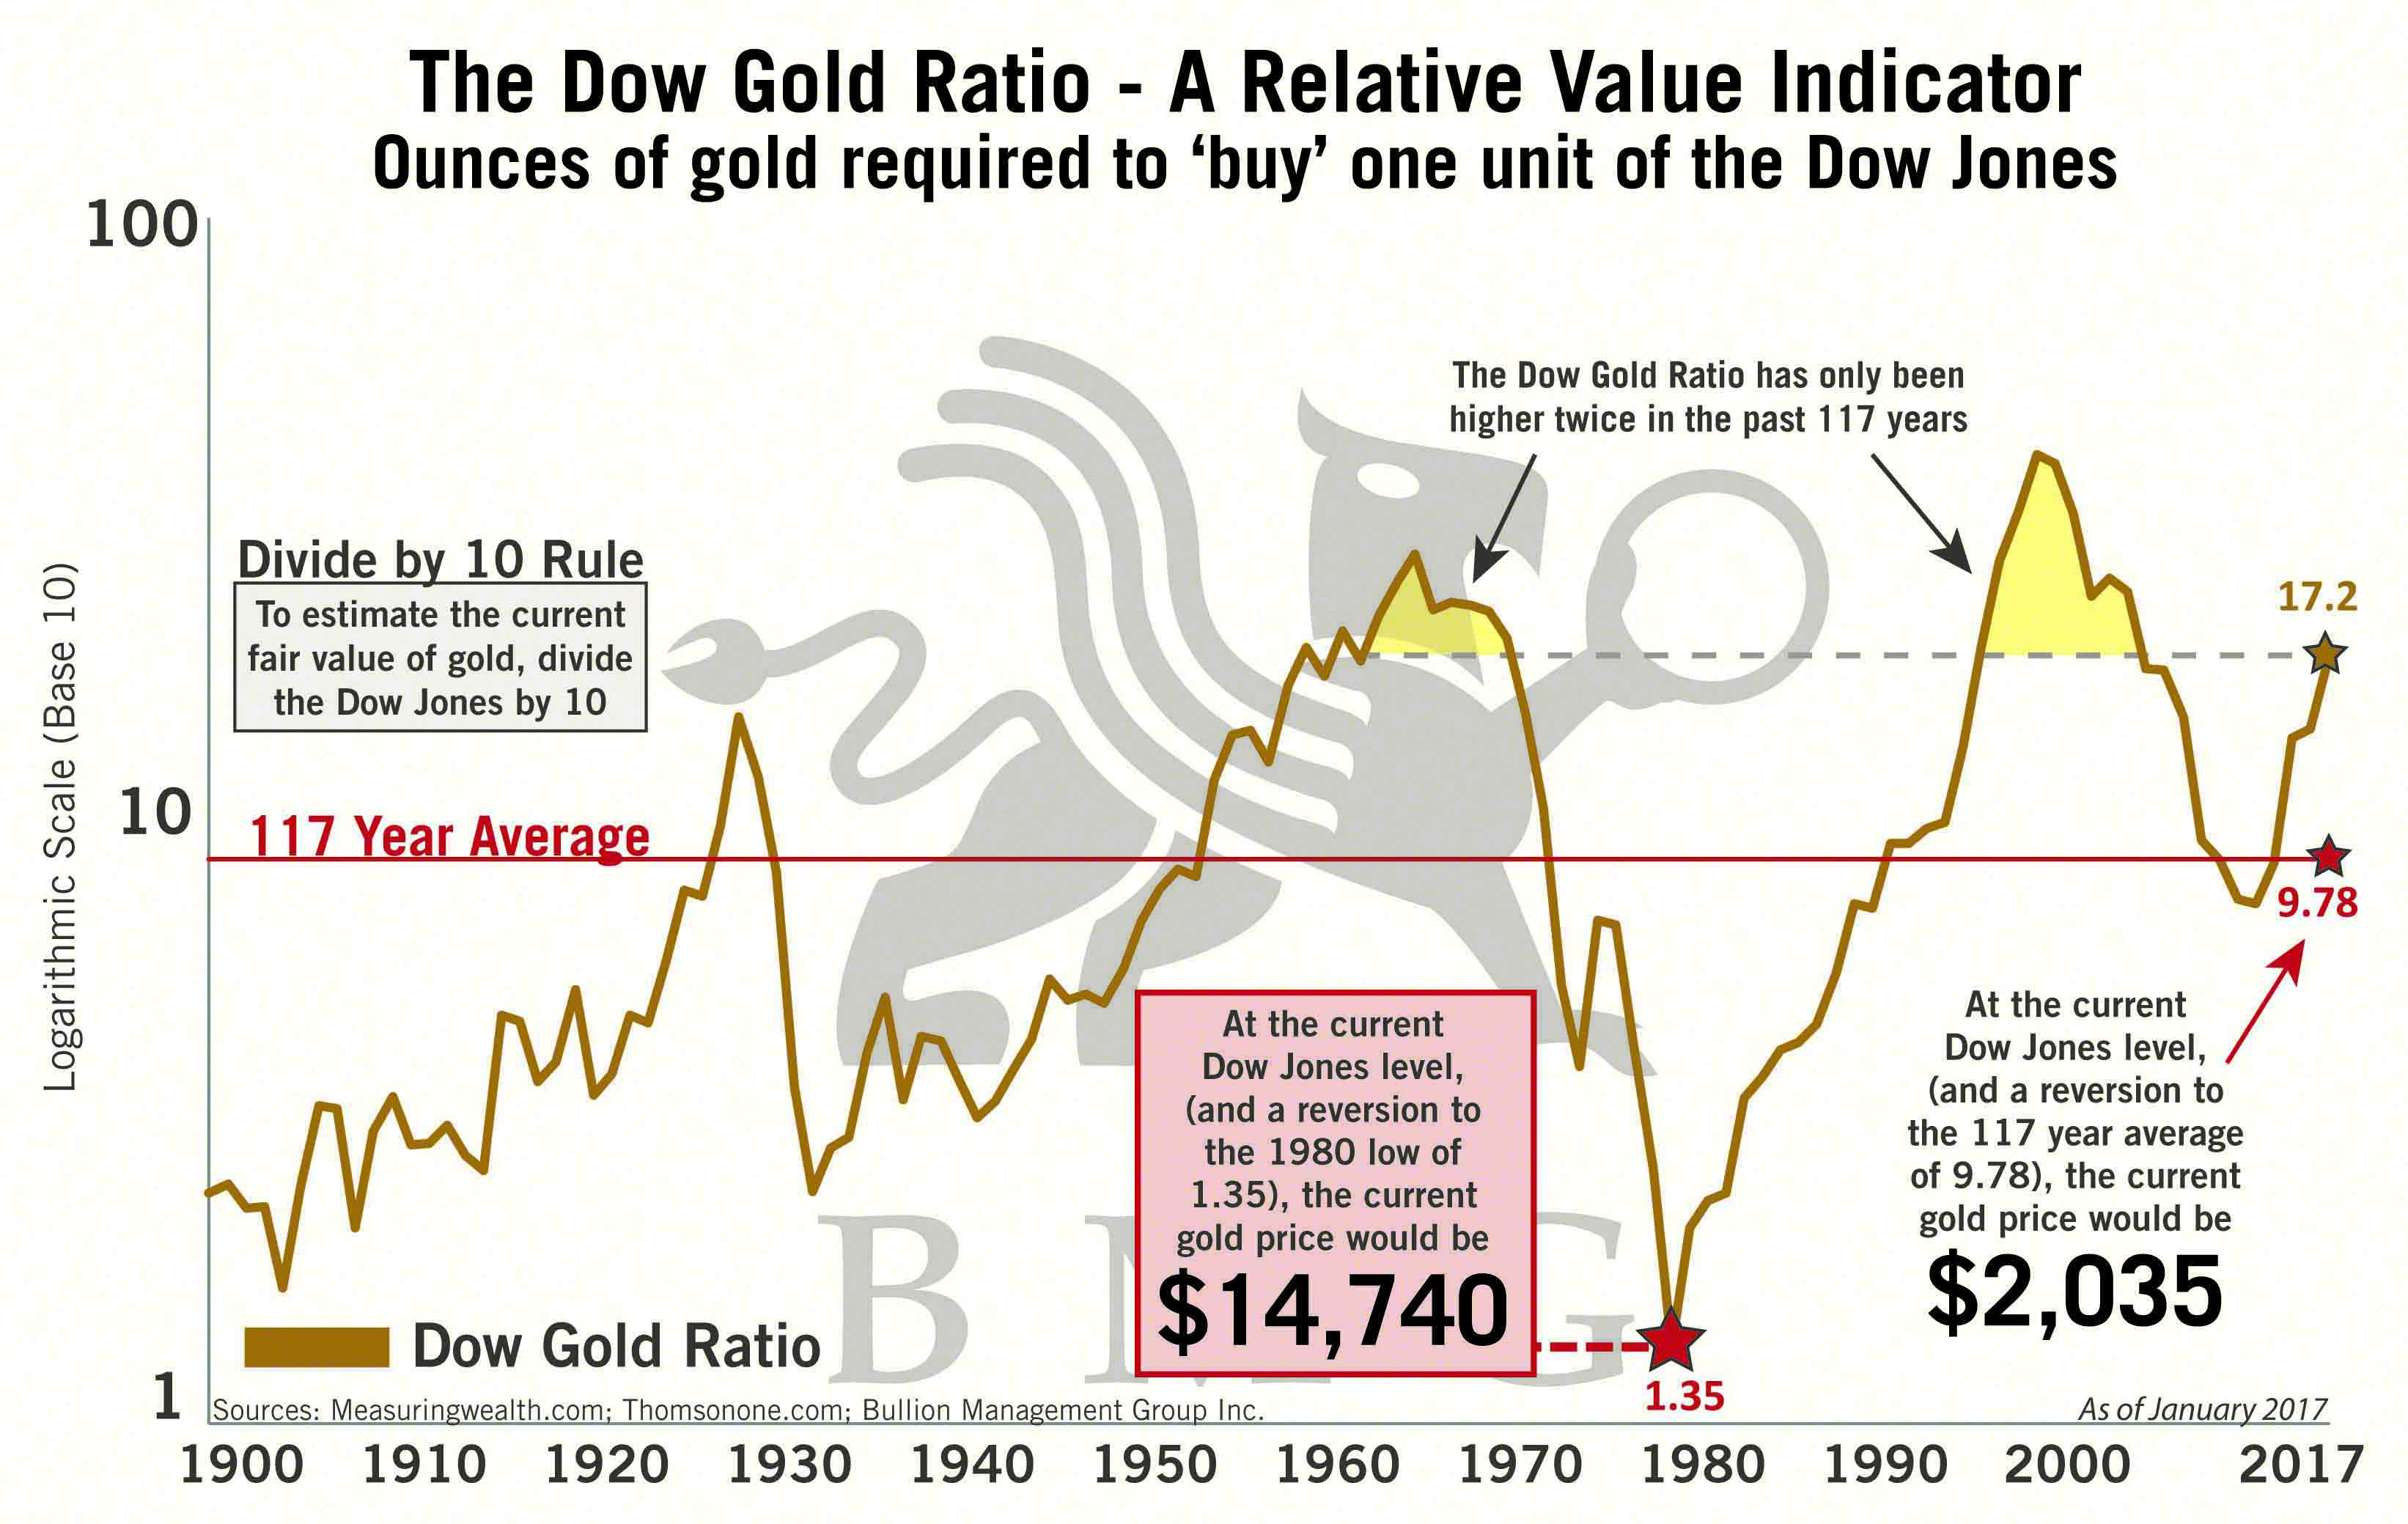 Dow Gold Ratio Relative Value Indicator